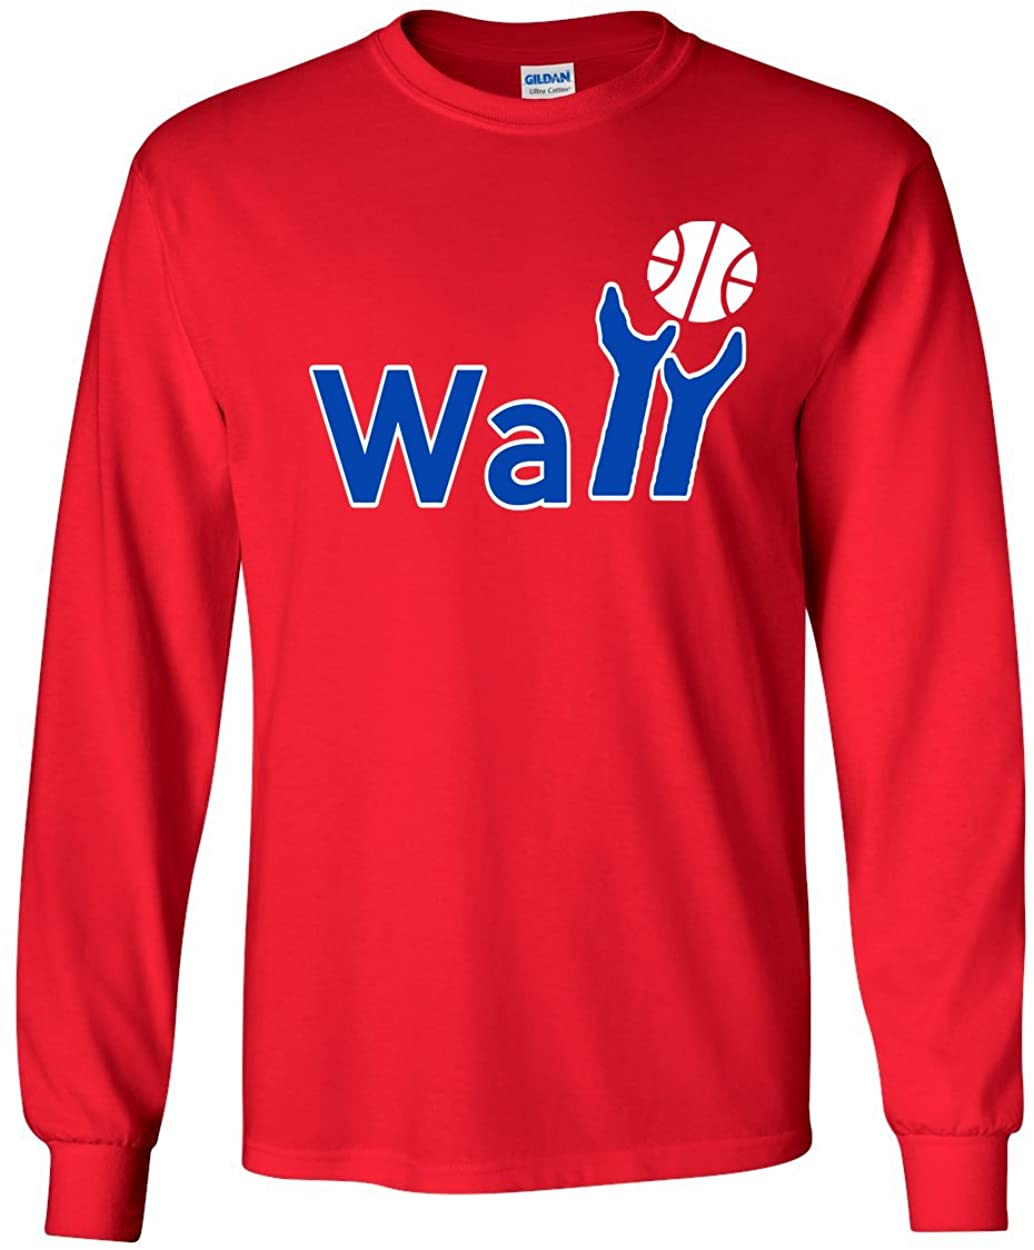 The Silo Long Sleeve RED Washington Wall Logo T-Shirt